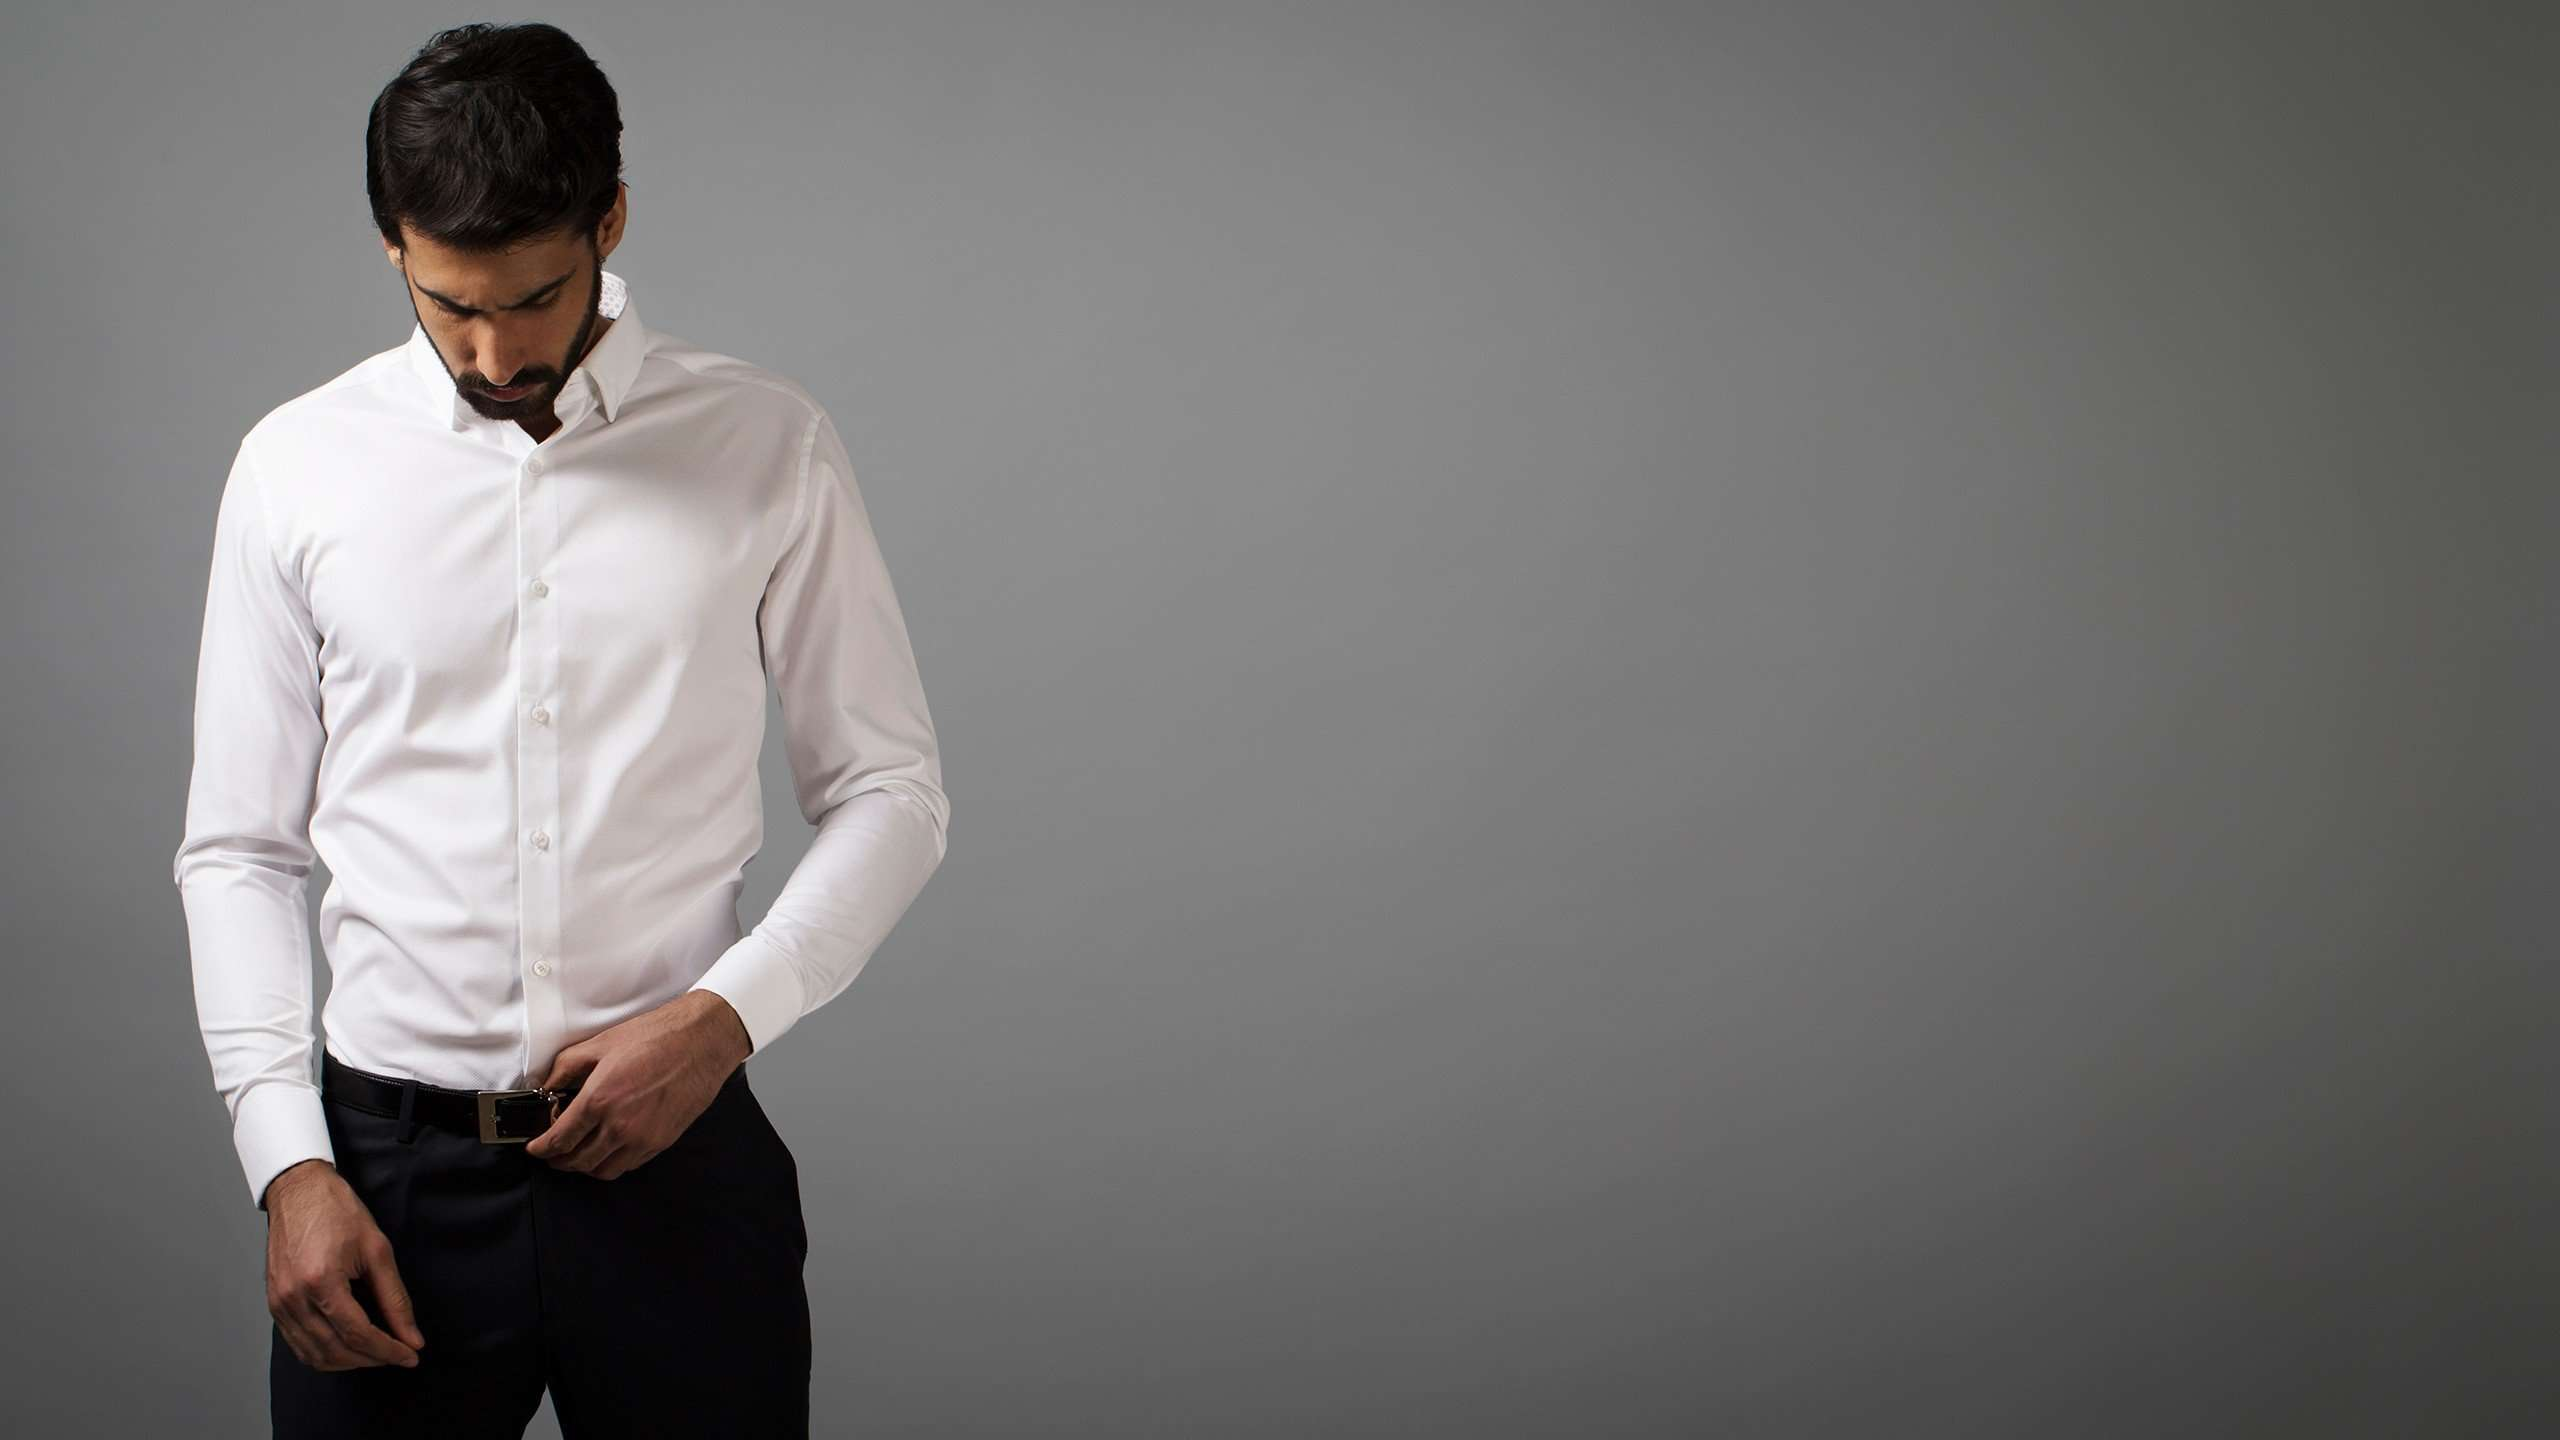 303964a685d76 Best White Shirts for Men 2018  The 6 BEST Button Down White Shirts